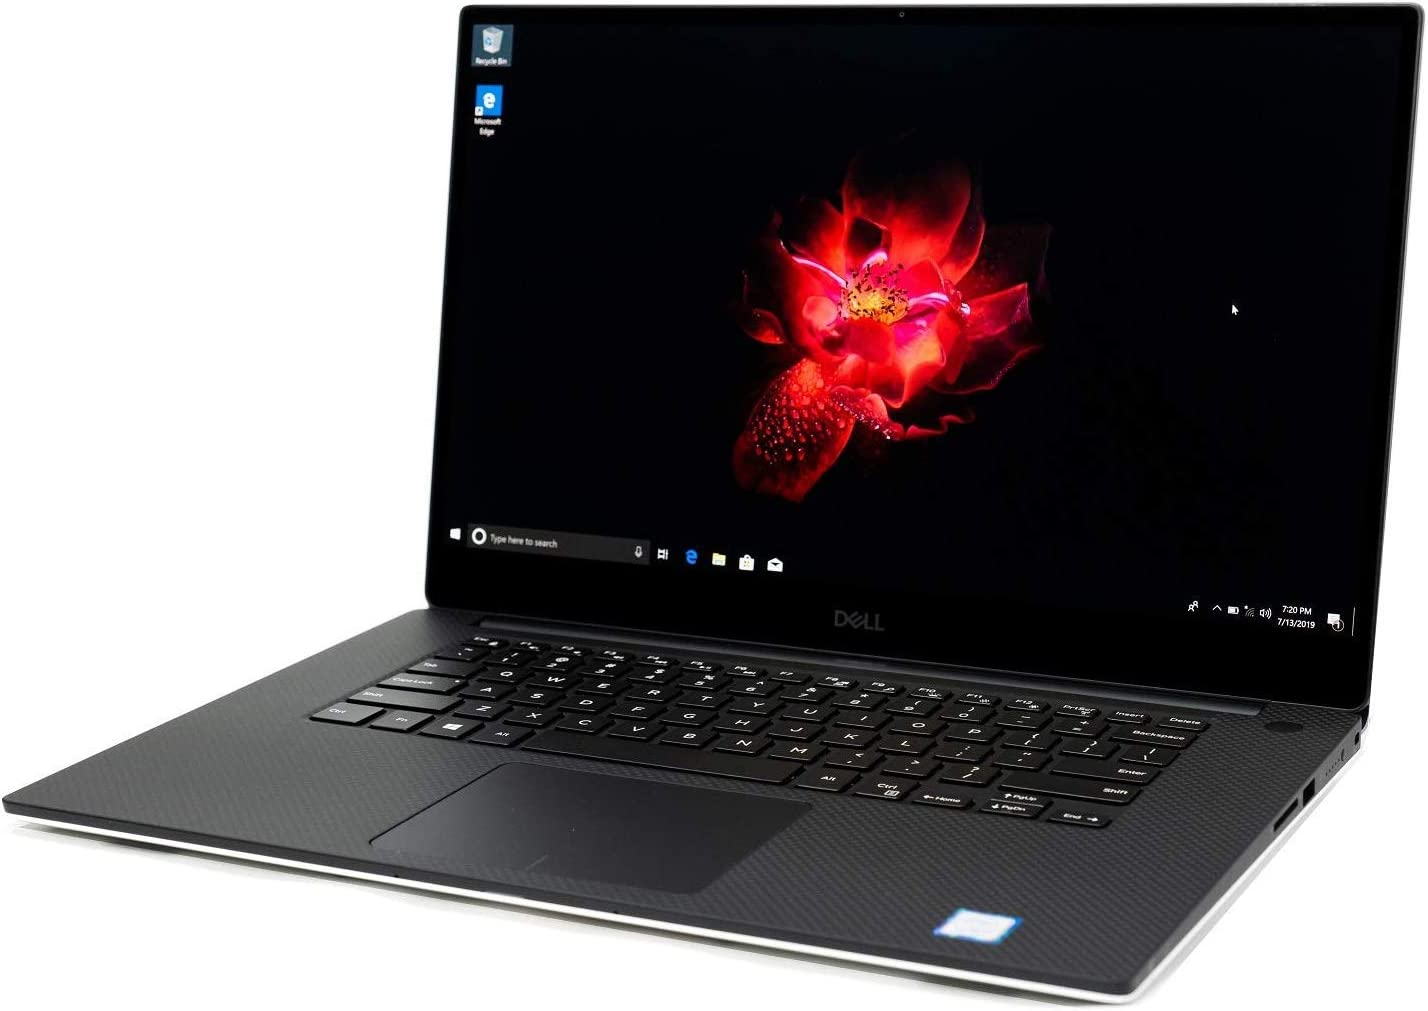 New XPS 15 7590 The World's Smallest 15.6-inch Performance Laptop with a Stunning 4K UHD OLED Display 9th Gen Intel i9-9980HK GTX 1650 4GB Plus Best Notebook Pen Light (1TB SSD|32GB RAM|Win 10 PRO)